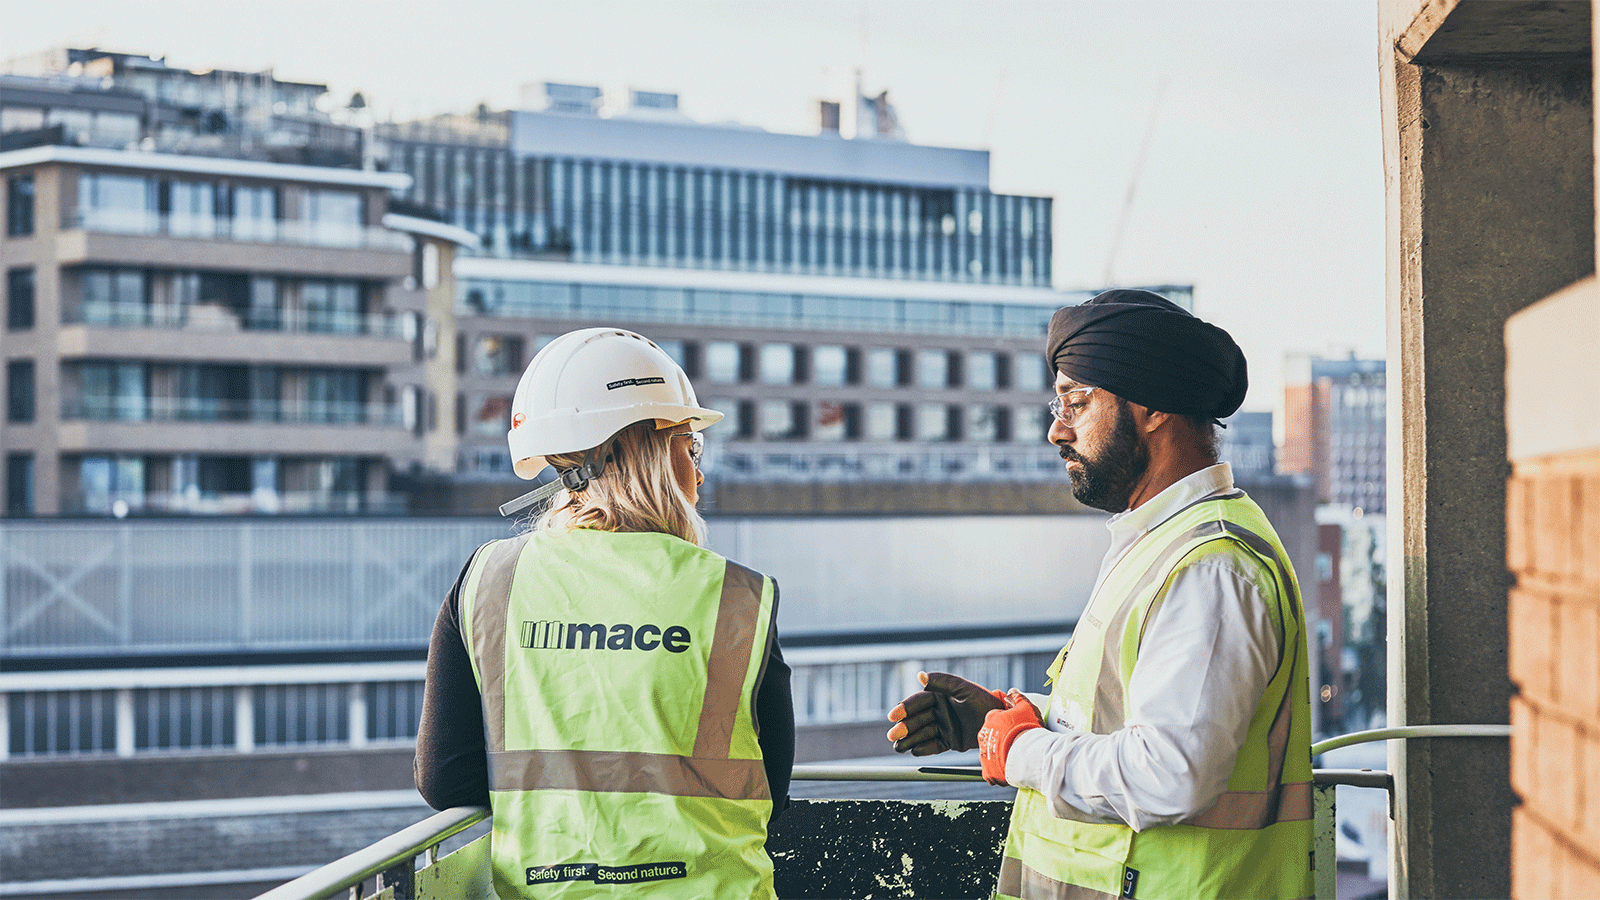 A man and a women wearing hivis jackets looking over at buildings on a  balcony